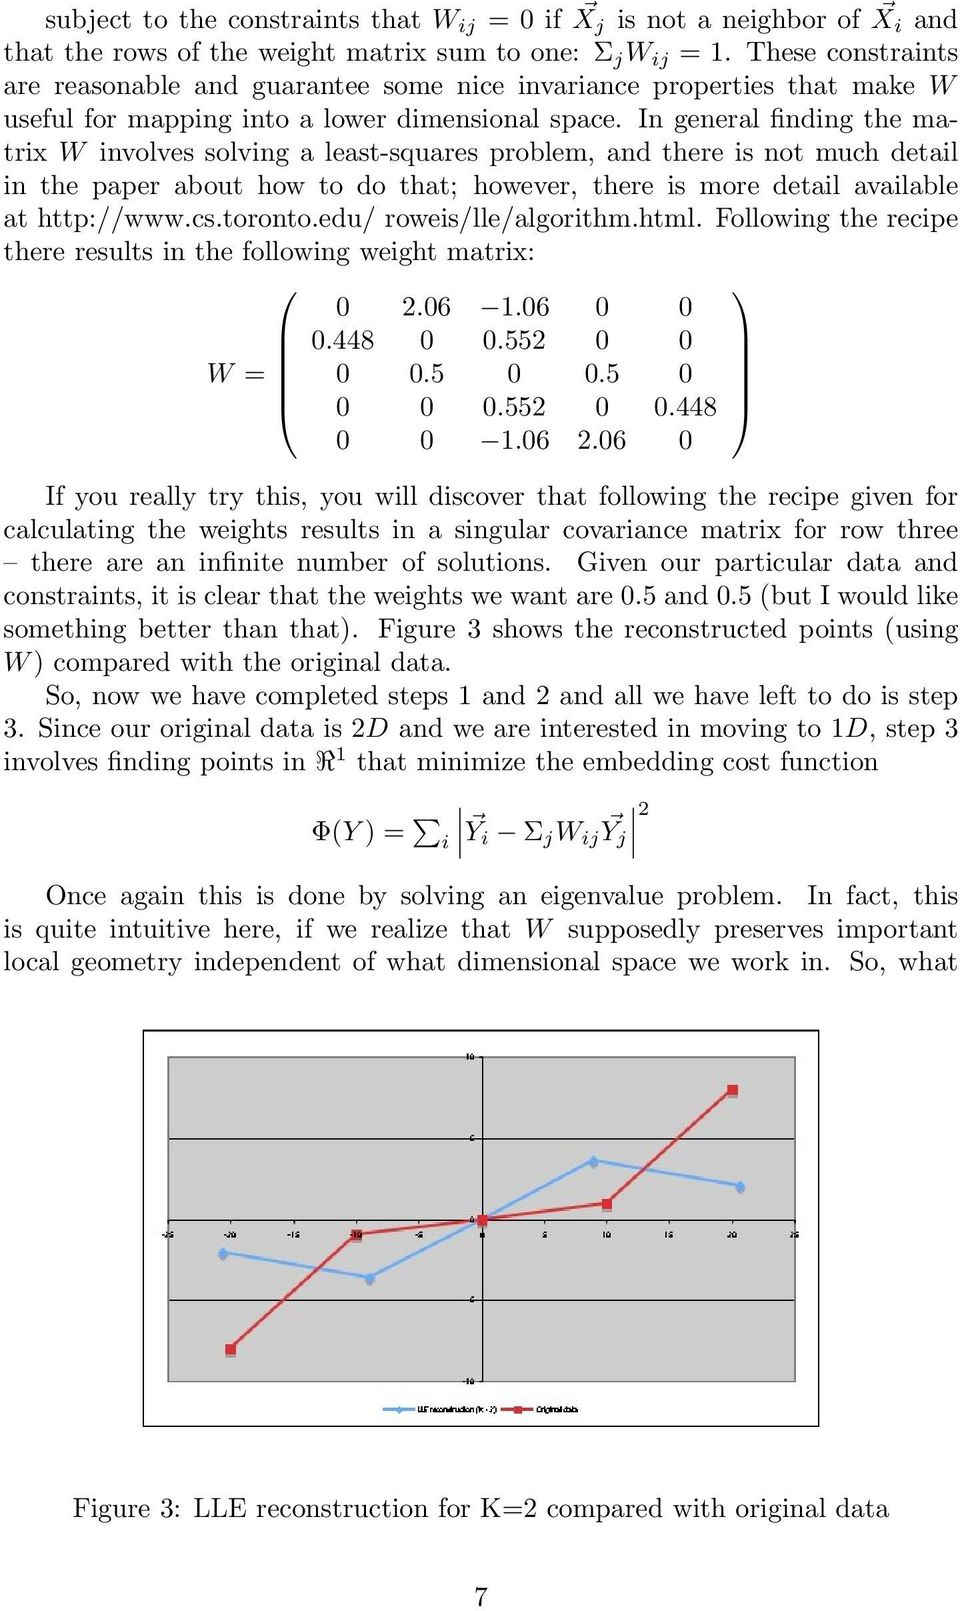 In general finding the matrix W involves solving a least-squares problem, and there is not much detail in the paper about how to do that; however, there is more detail available at http://www.cs.